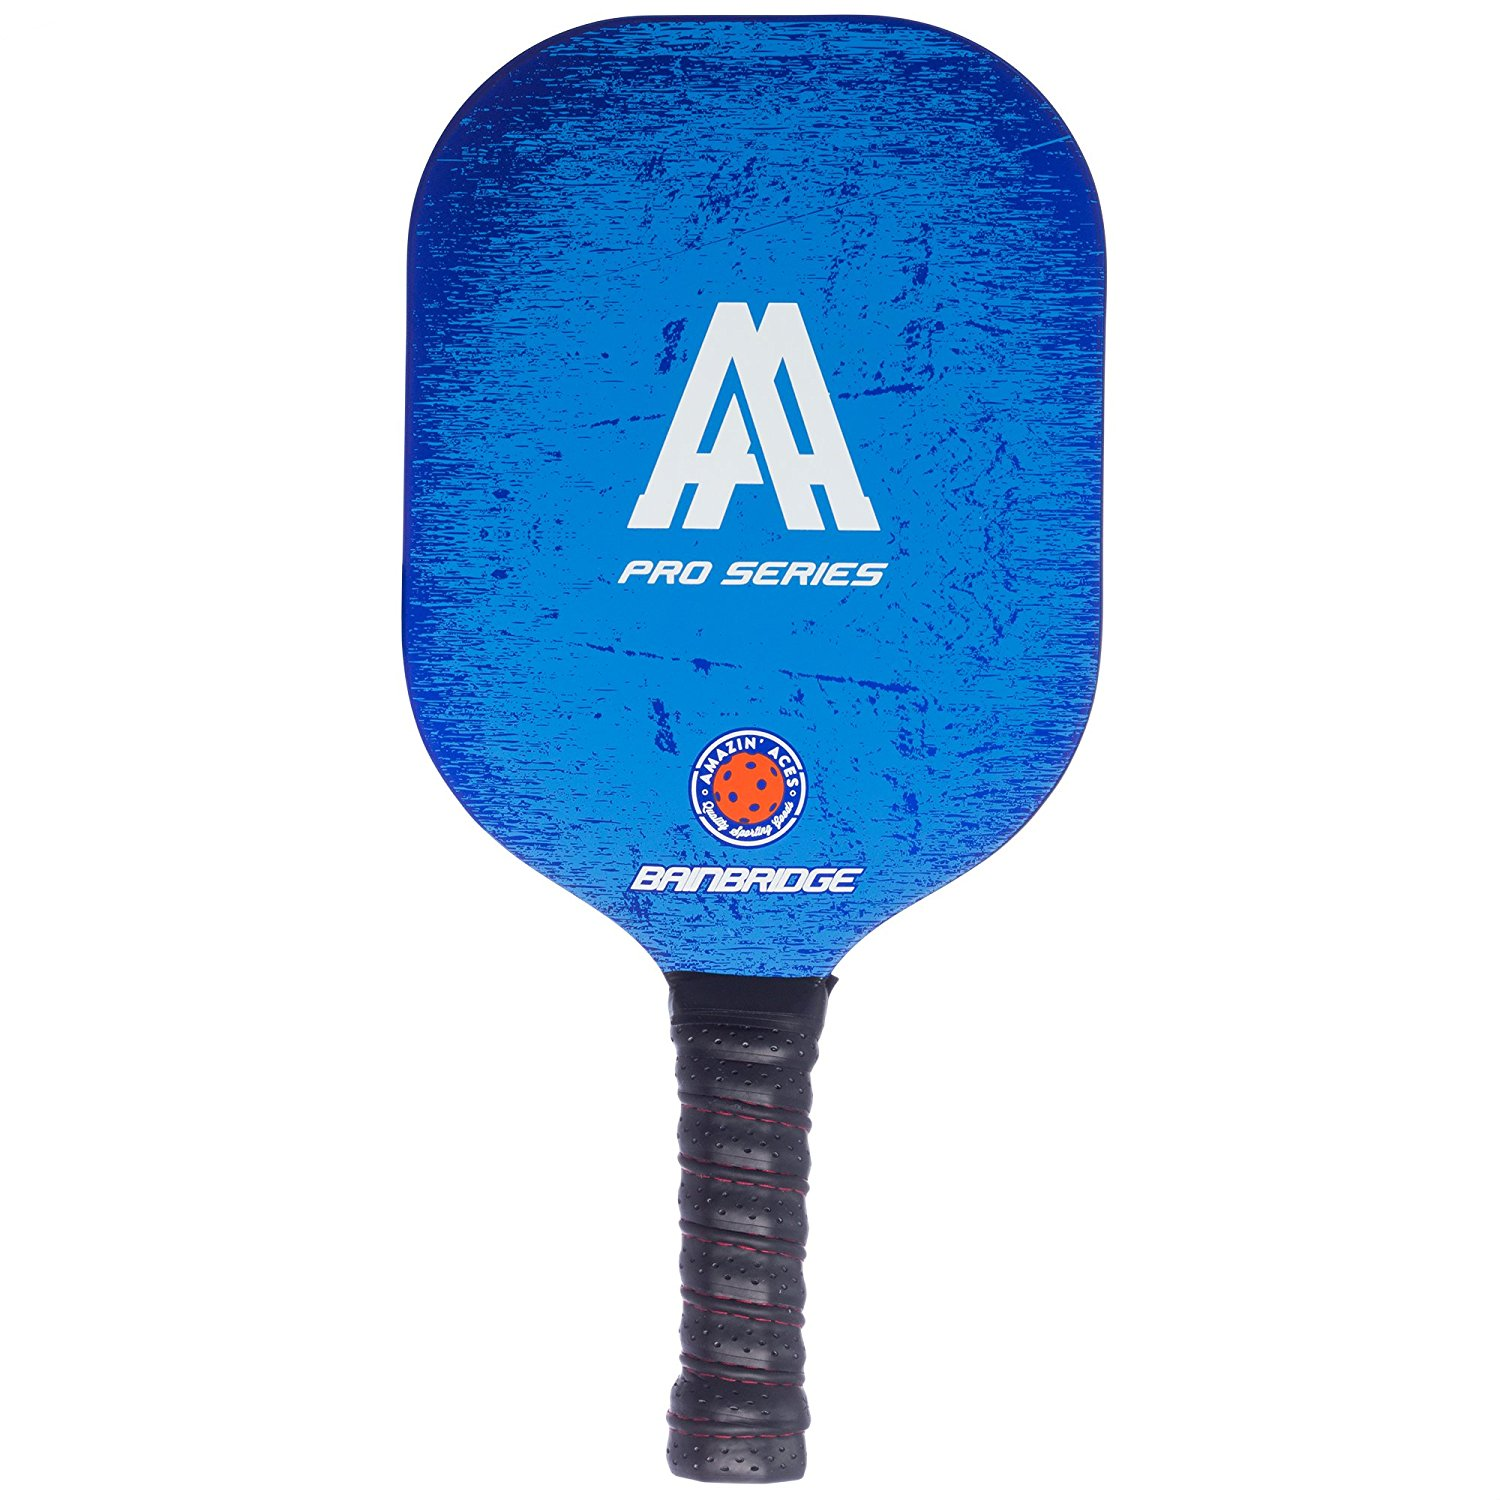 Amazin' Aces 'BAINBRIDGE' Pickleball Paddle